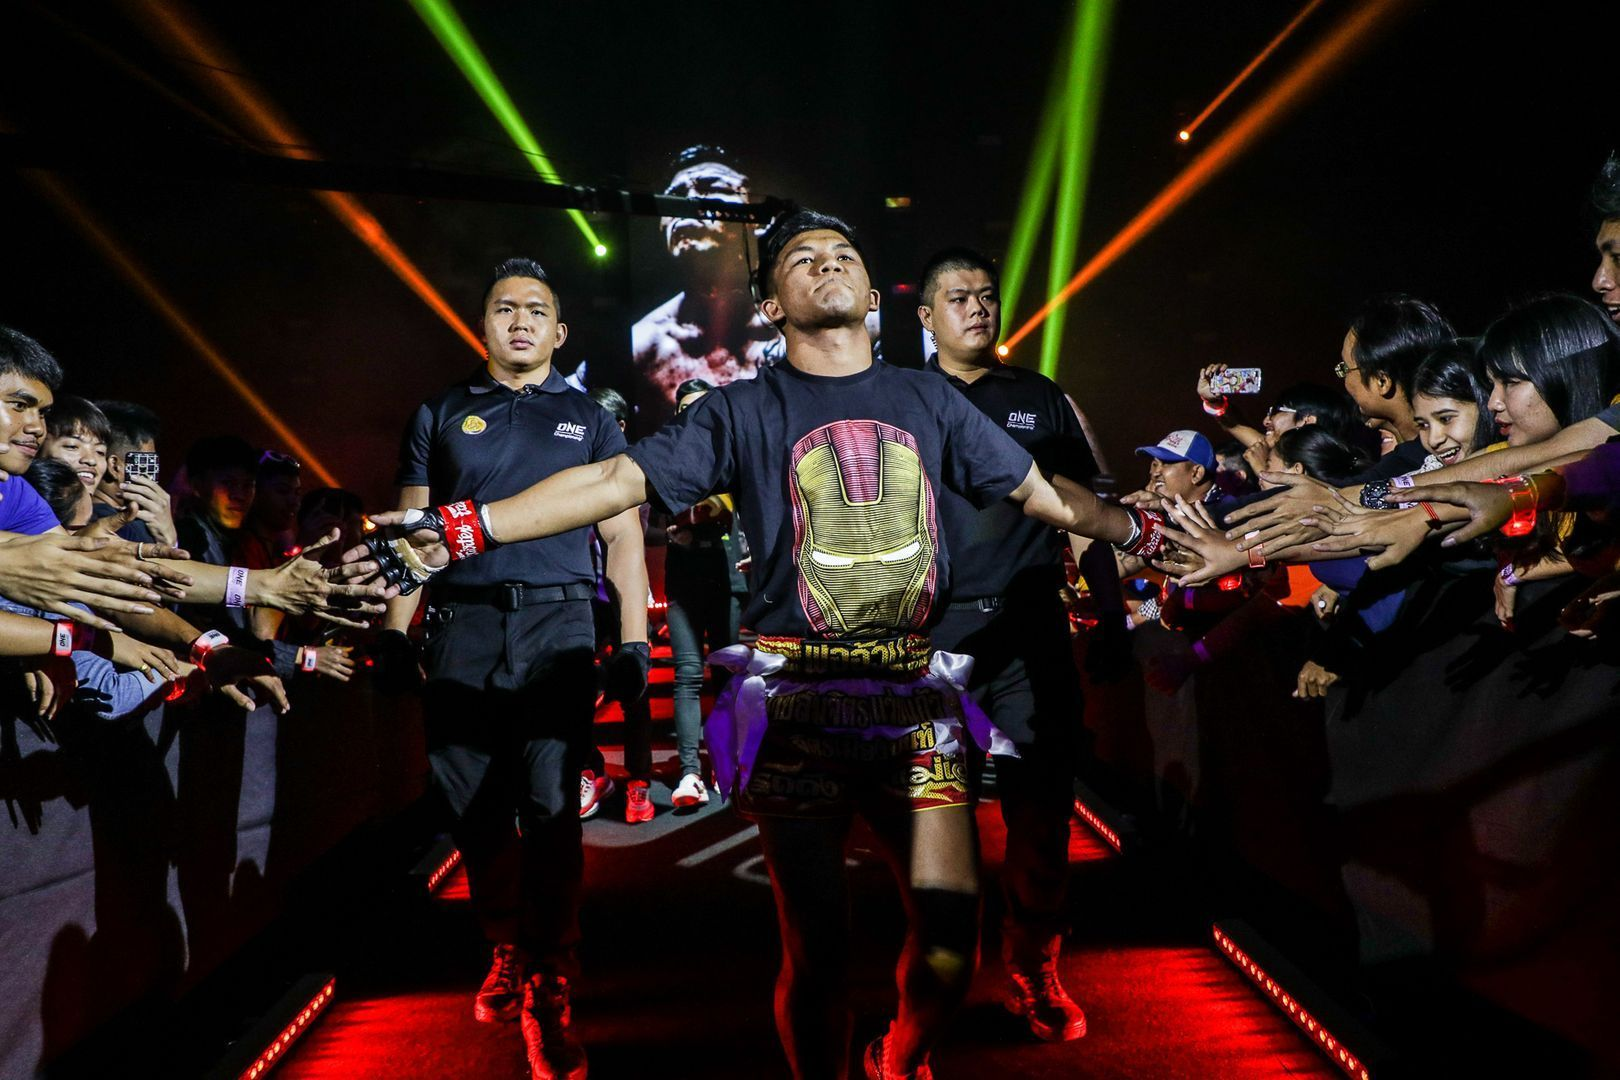 Rodtang Jitmuangnon makes his entrance at ONE A NEW TOMORROW